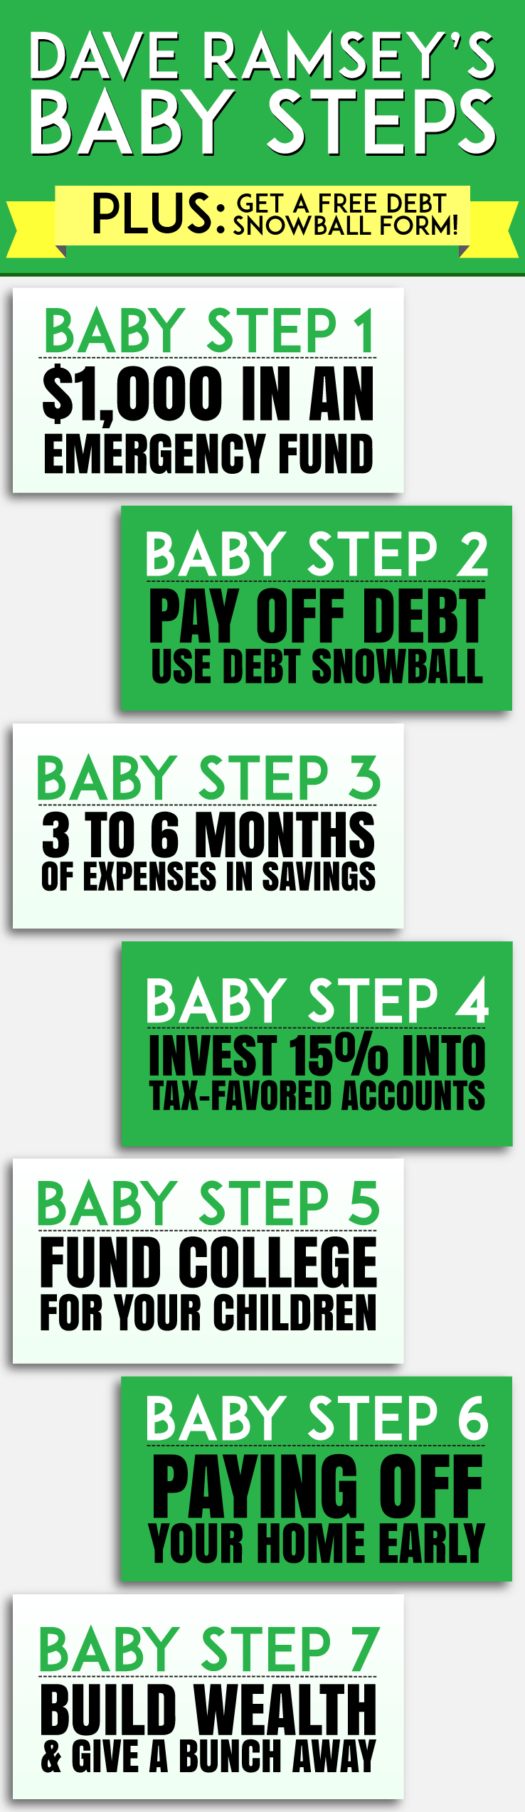 Dave Ramsey's 7 baby steps vertical infographic